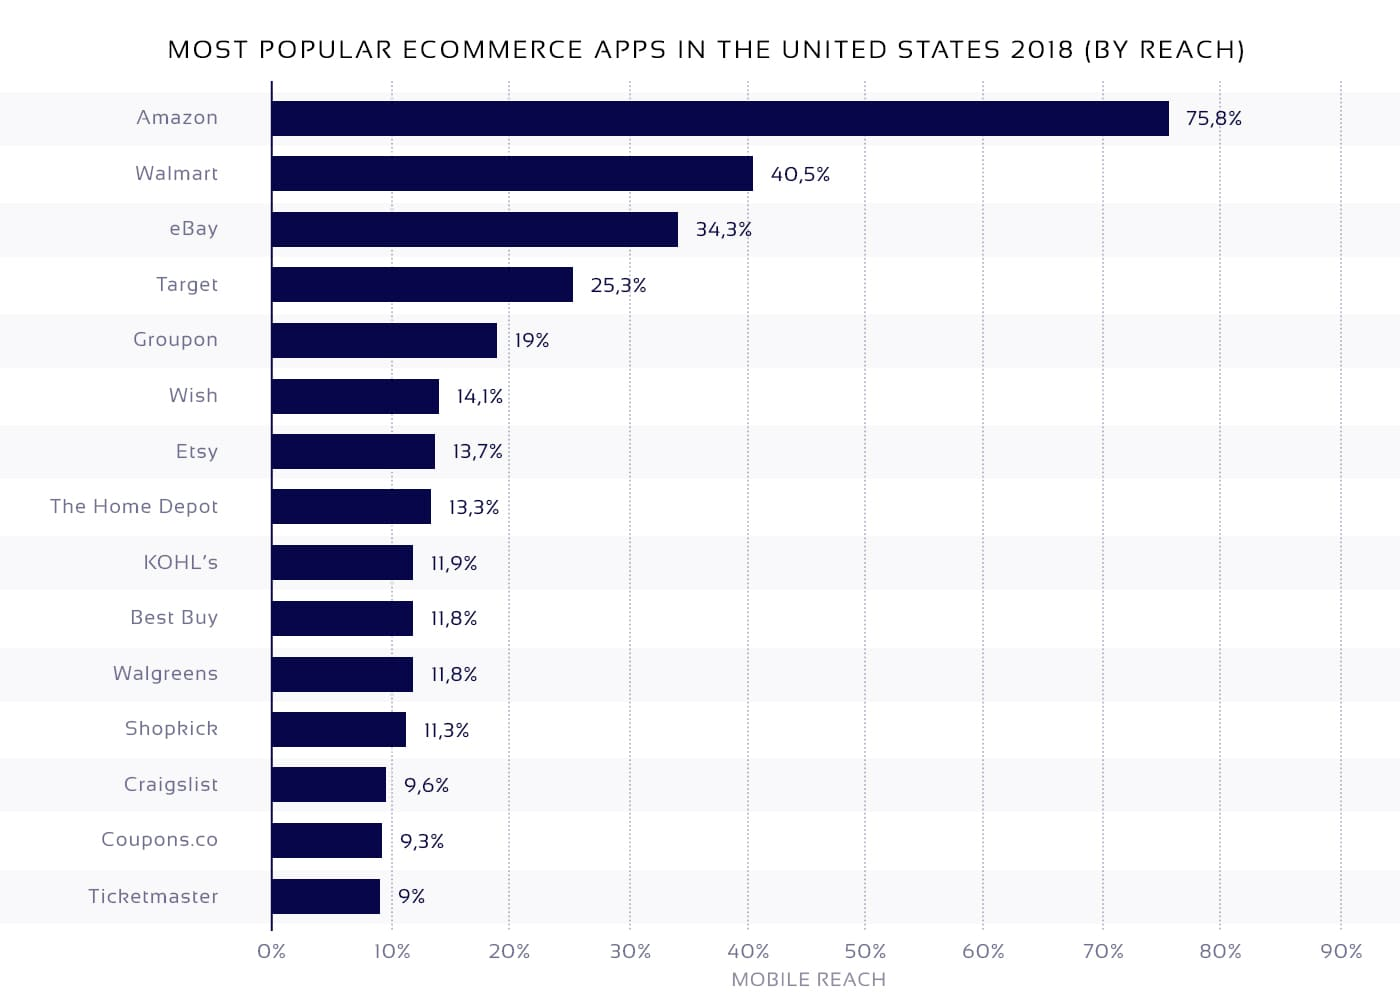 Most popular eCommerce apps in the U.S.